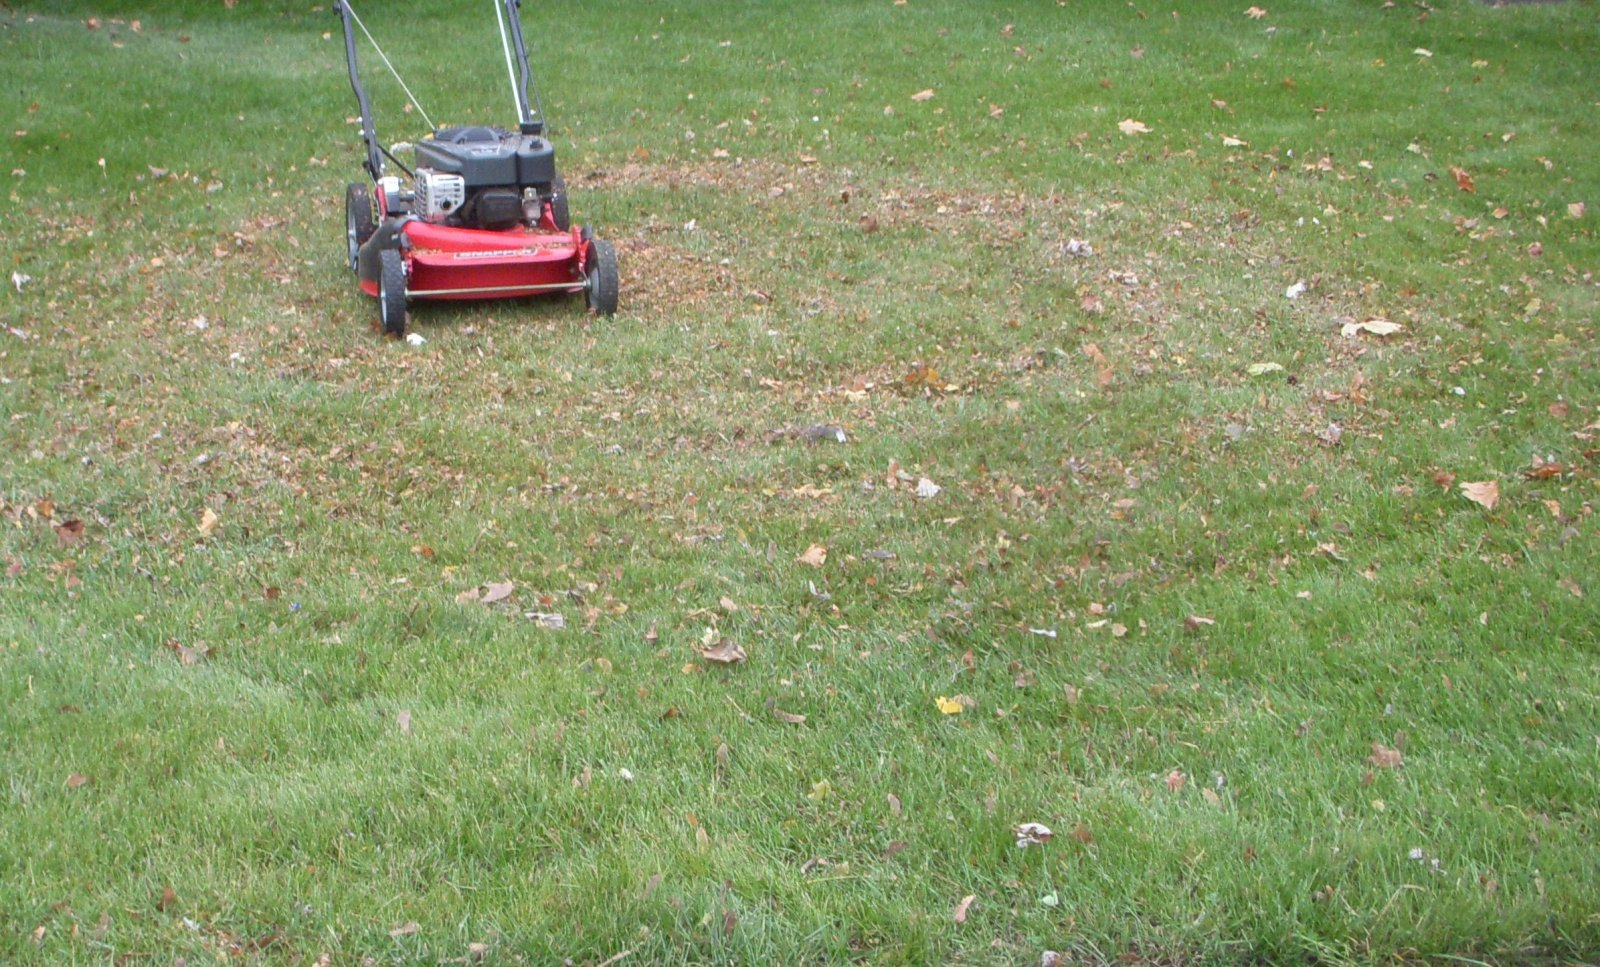 mulch shred leaves on new young grass lawn (7).JPG